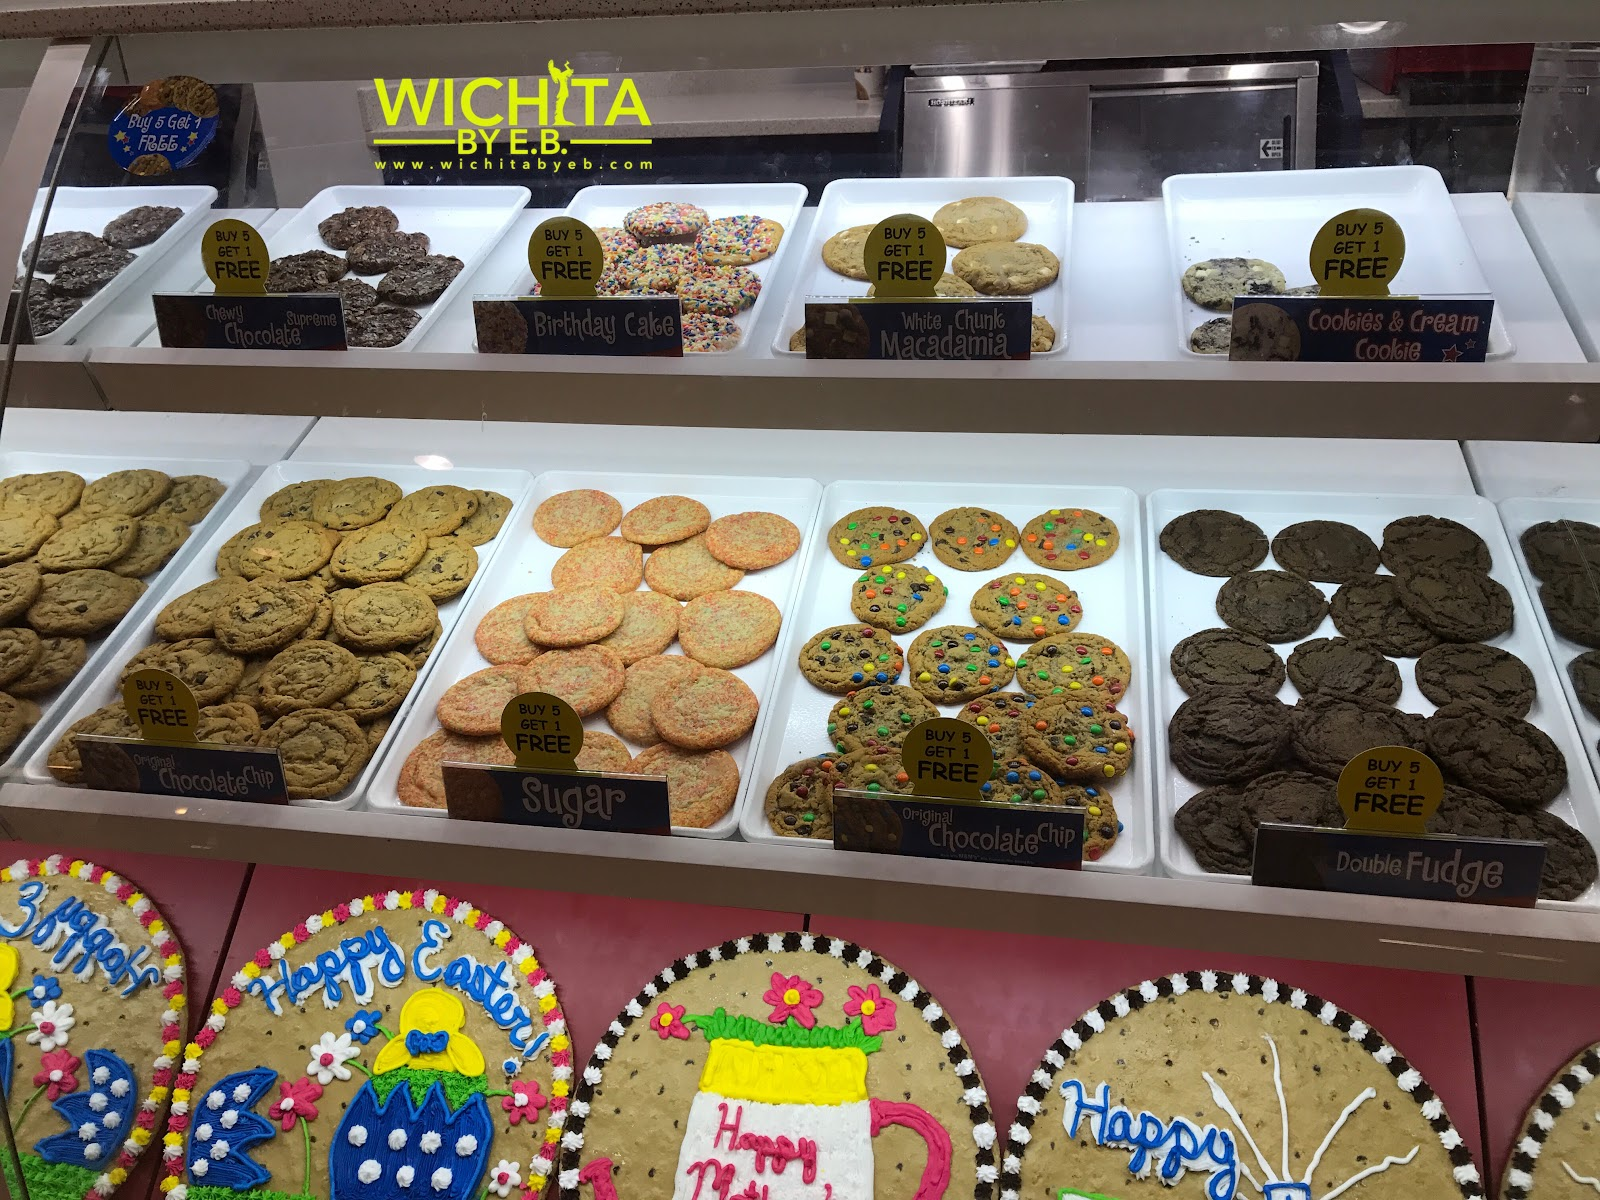 For Those Who Like To Keep It Local Great American Cookie Is A National Franchise With Just One Location In Town